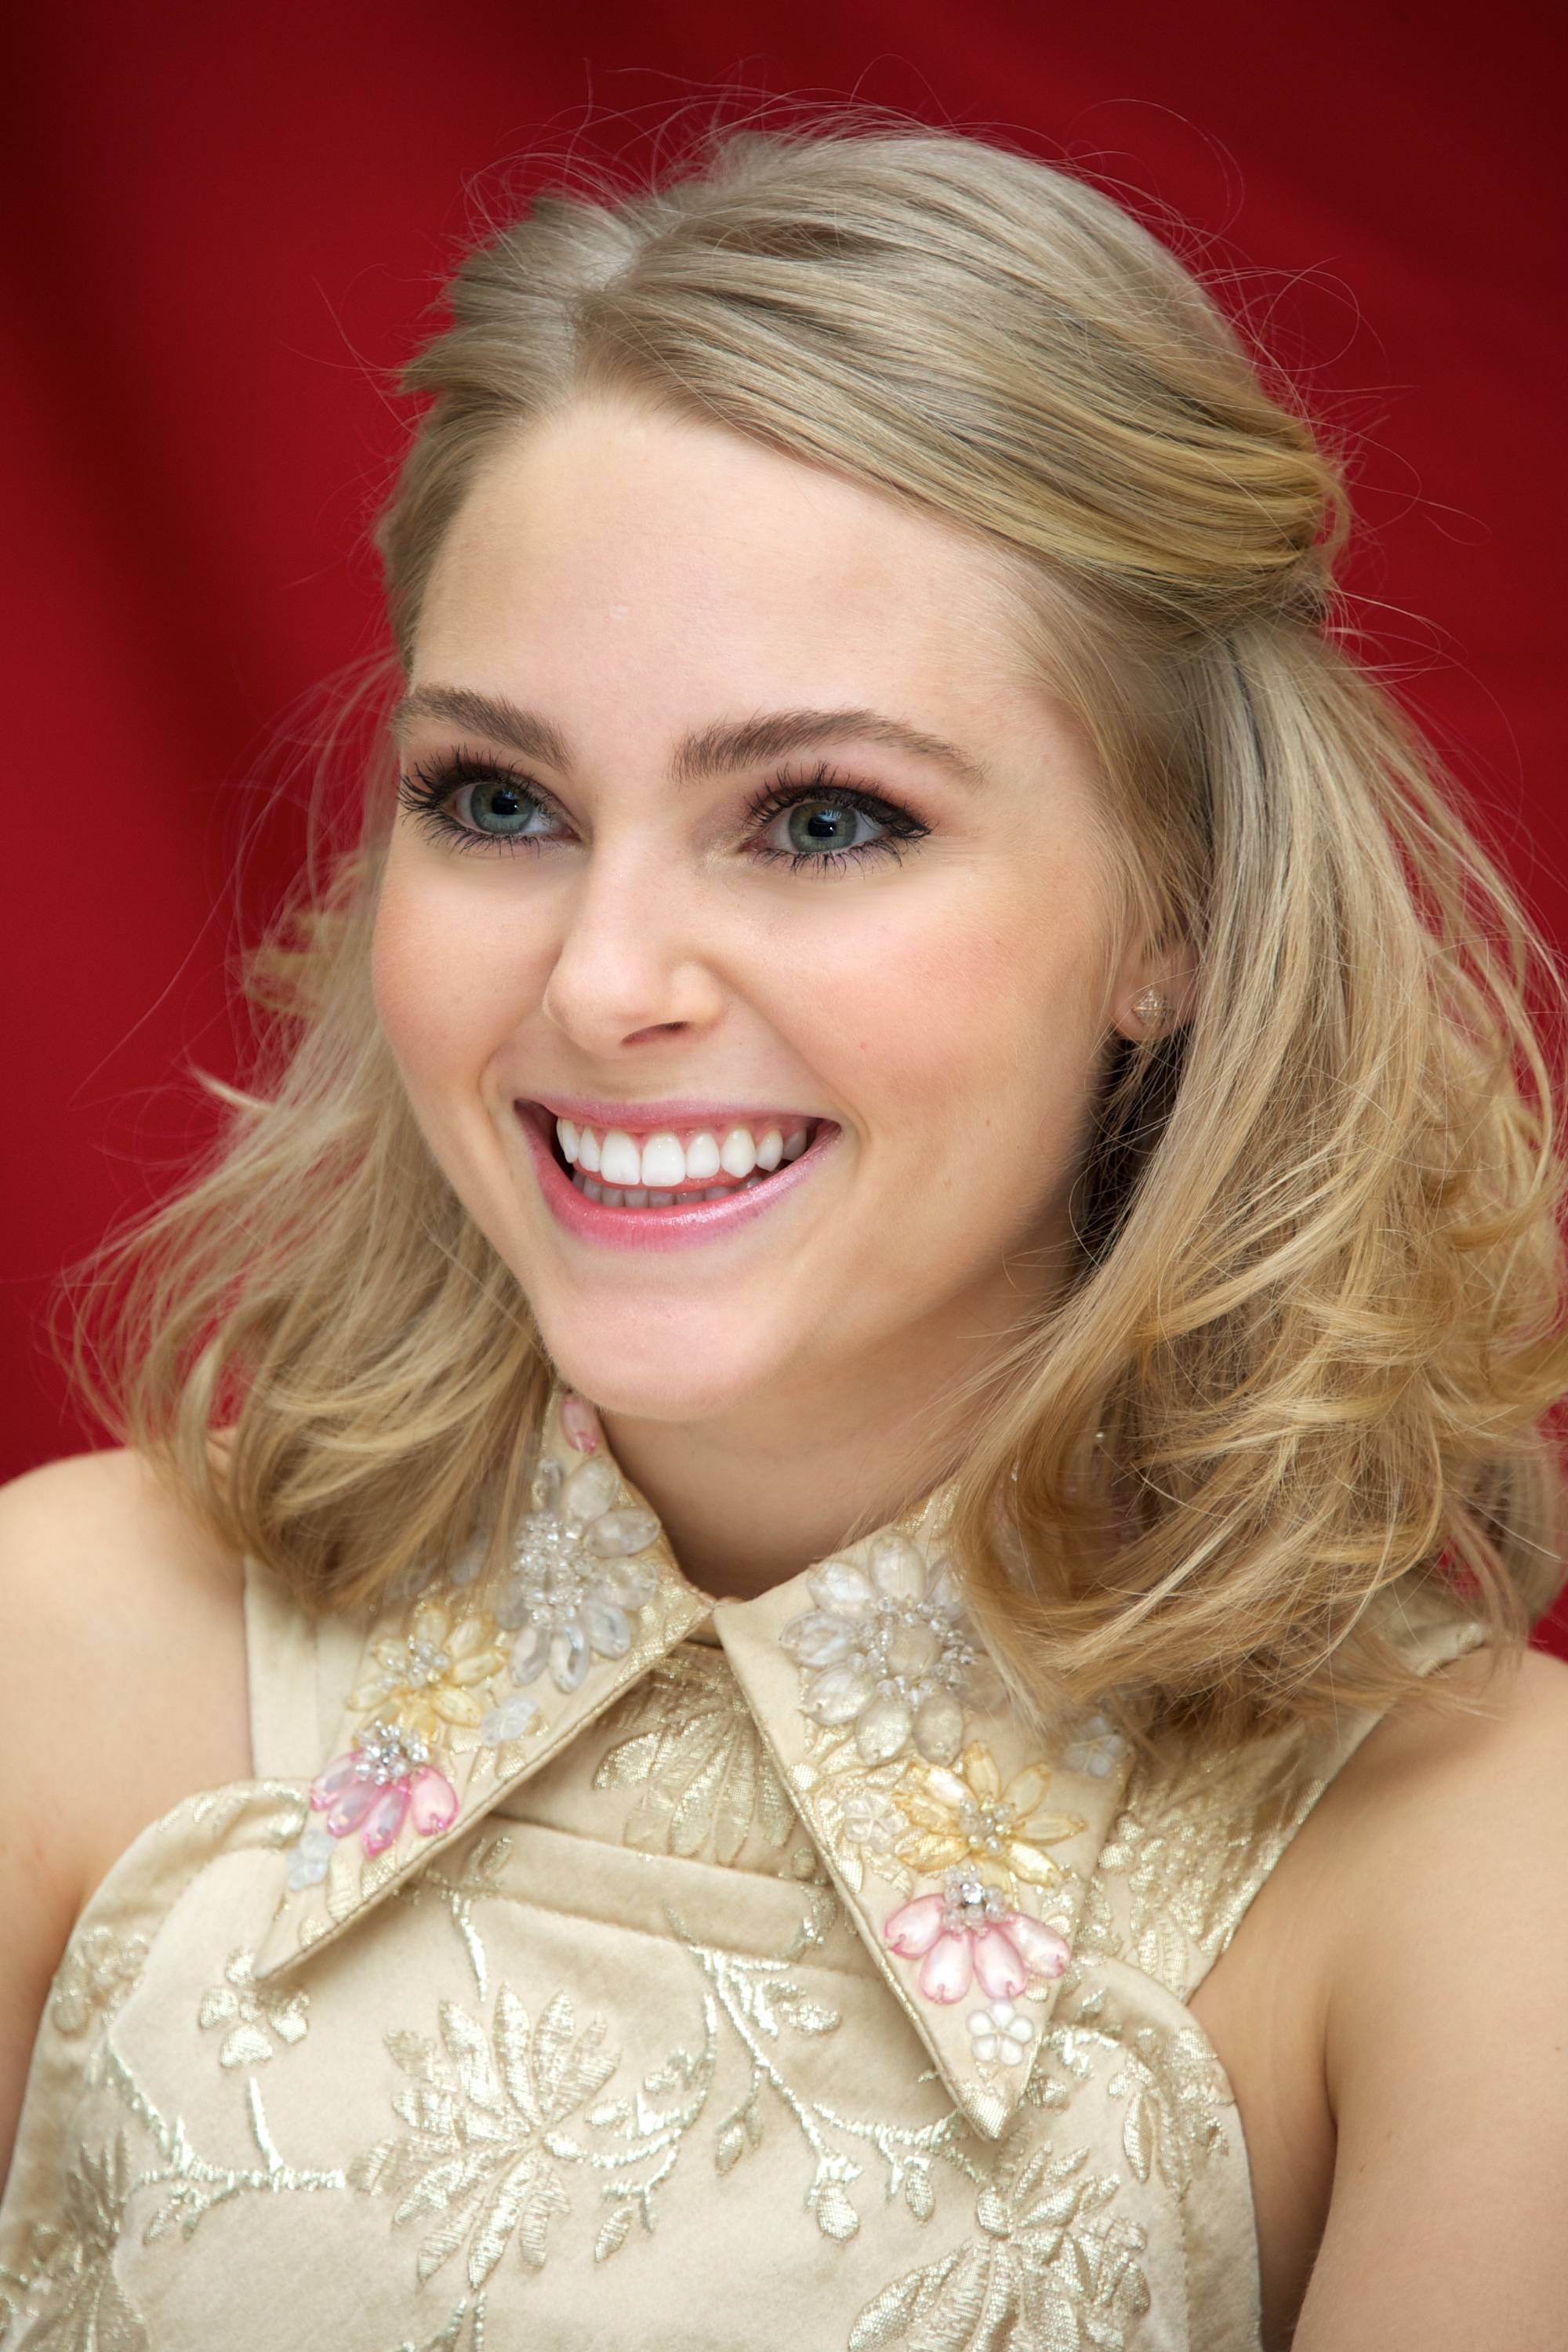 Annasophia Robb For mobile